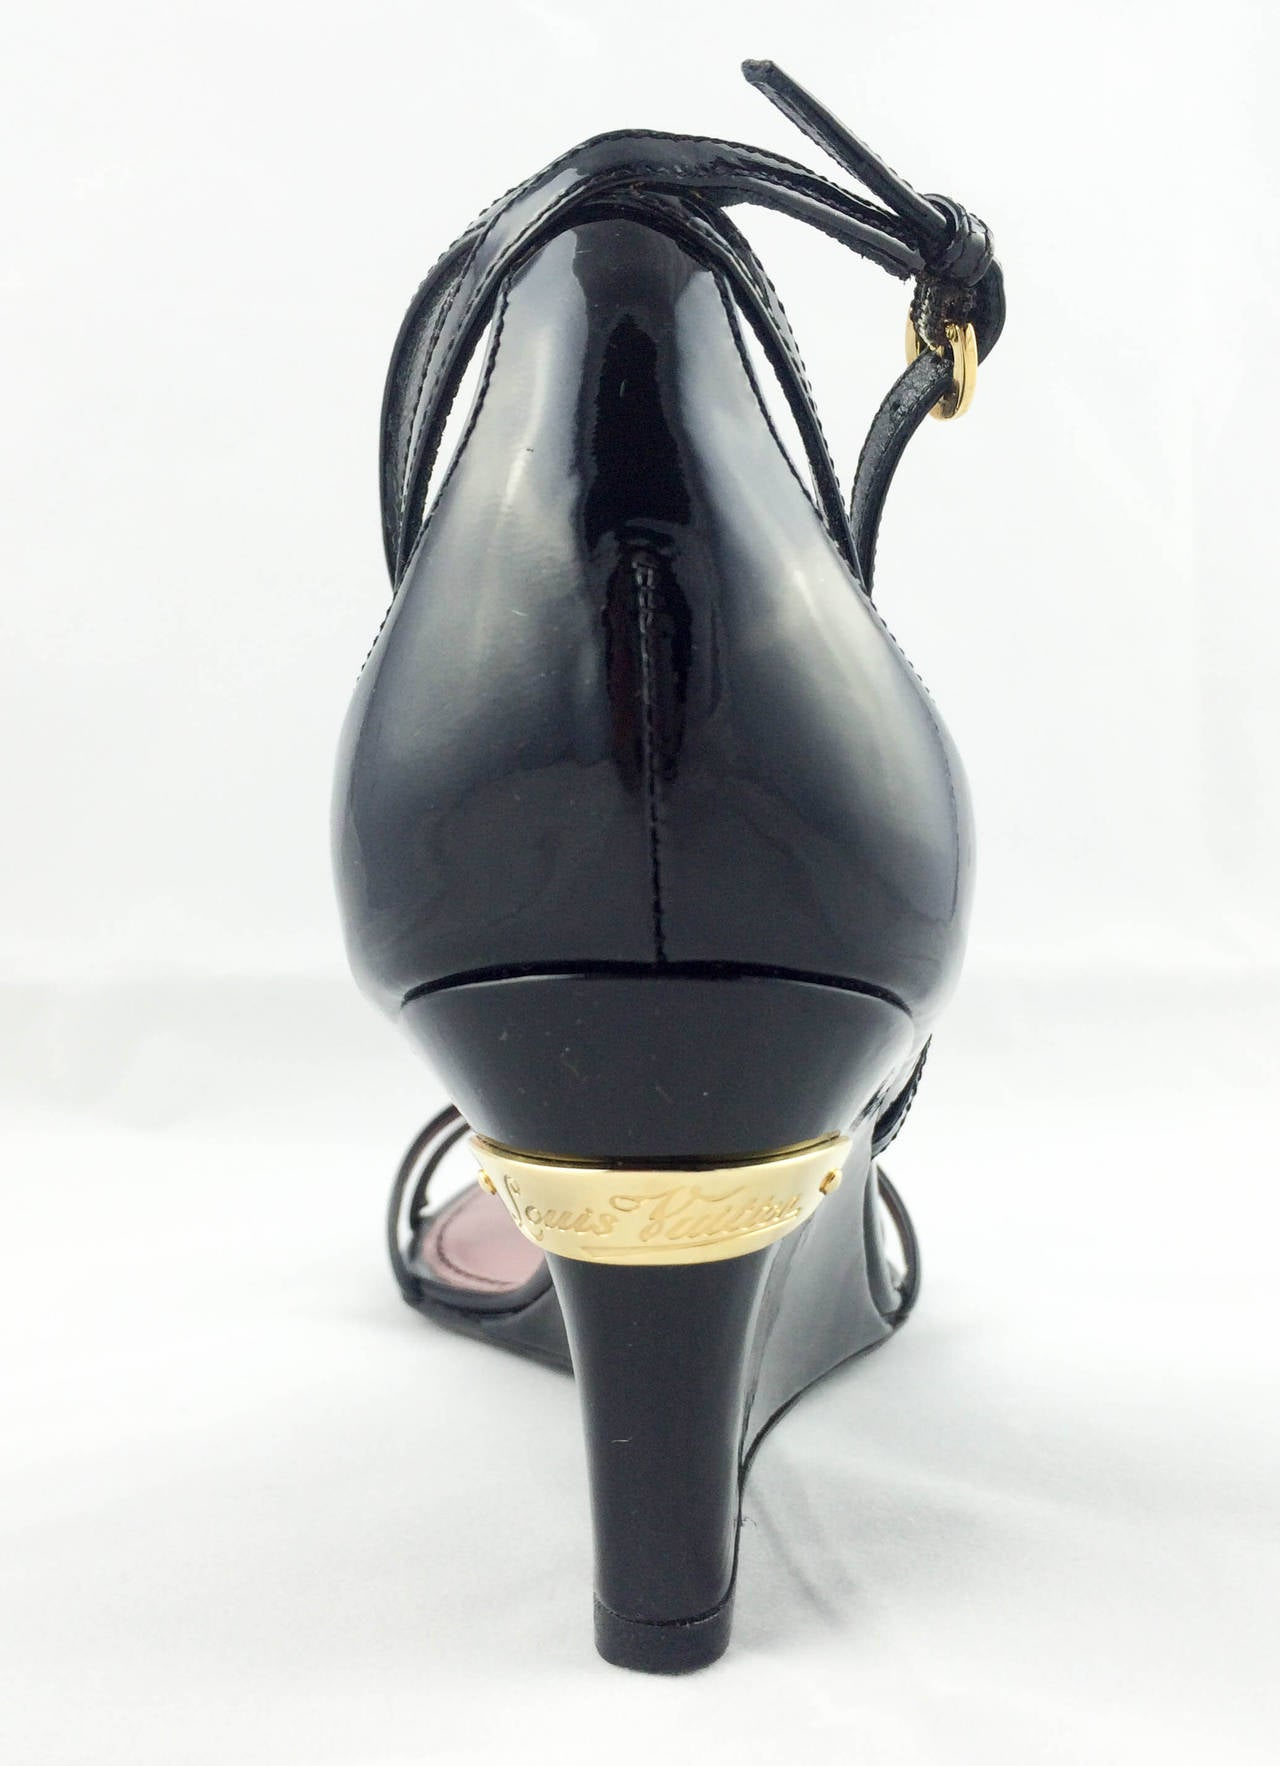 Black Louis Vuitton Strawberry Wedges Sandals - 2009 For Sale